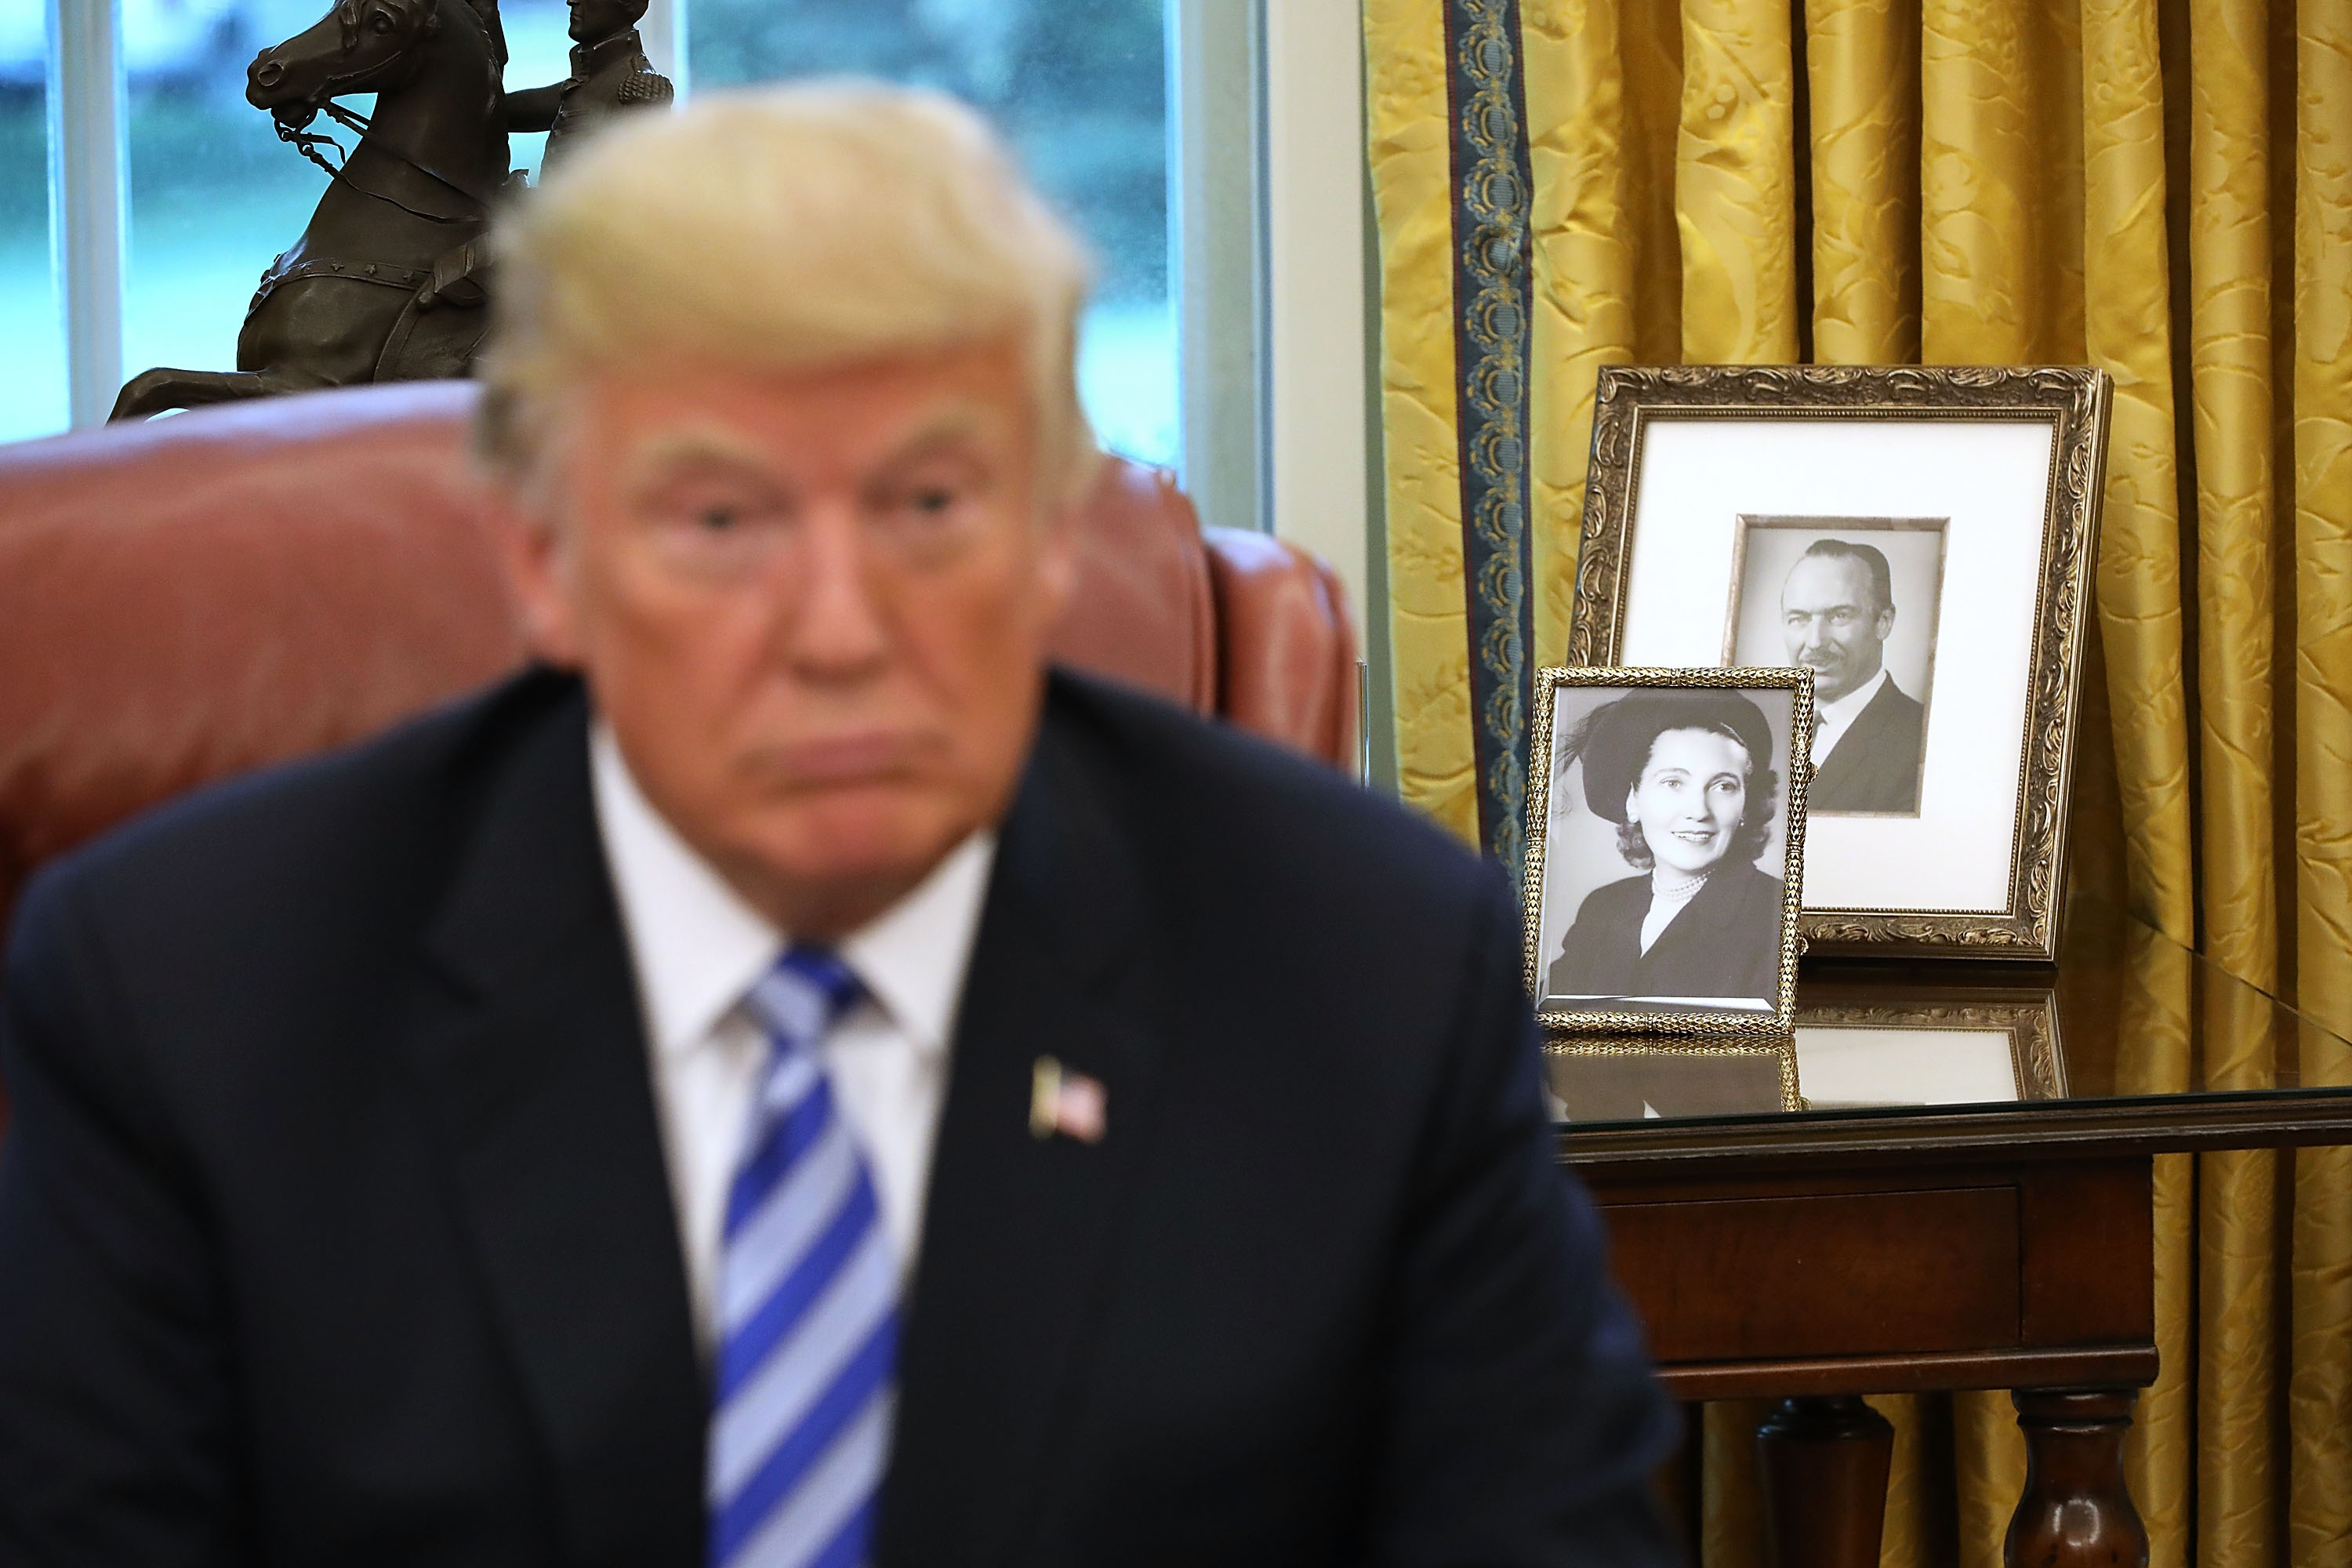 Framed photographs of President Donald Trump's parents, Fred and Mary Trump, sit on a table in the Oval Office. (Photo: Chip Somodevilla/Getty Images)